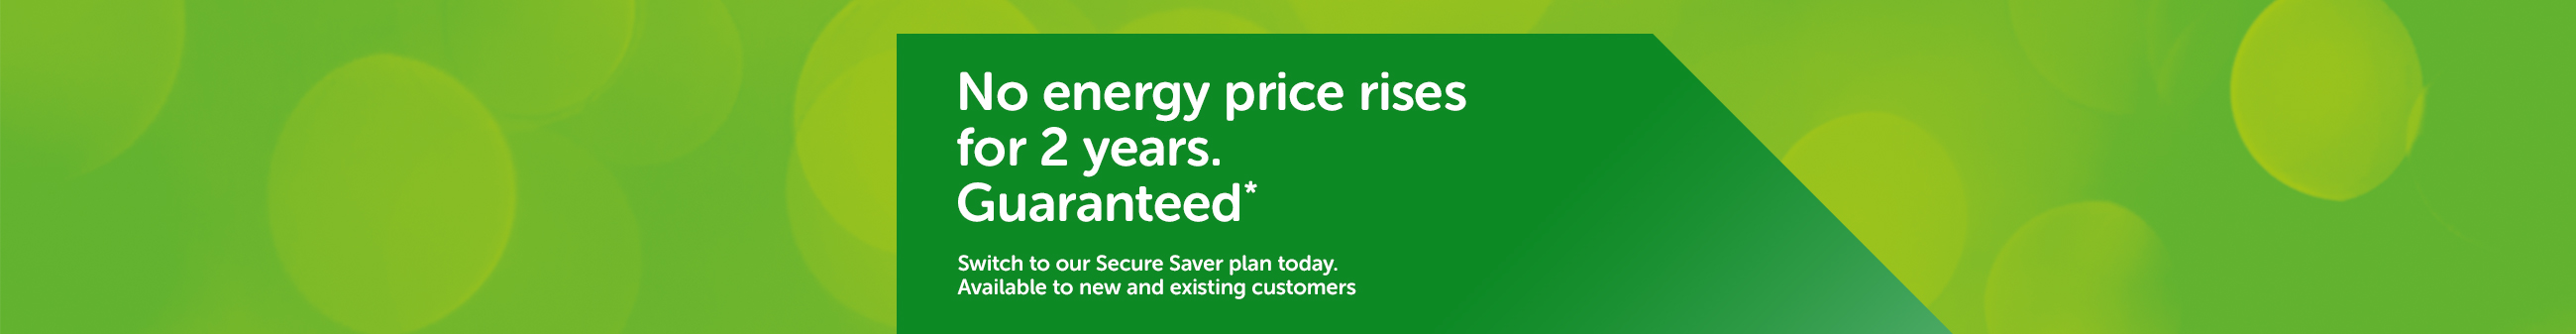 No energy price rises for 2 years. Guaranteed*